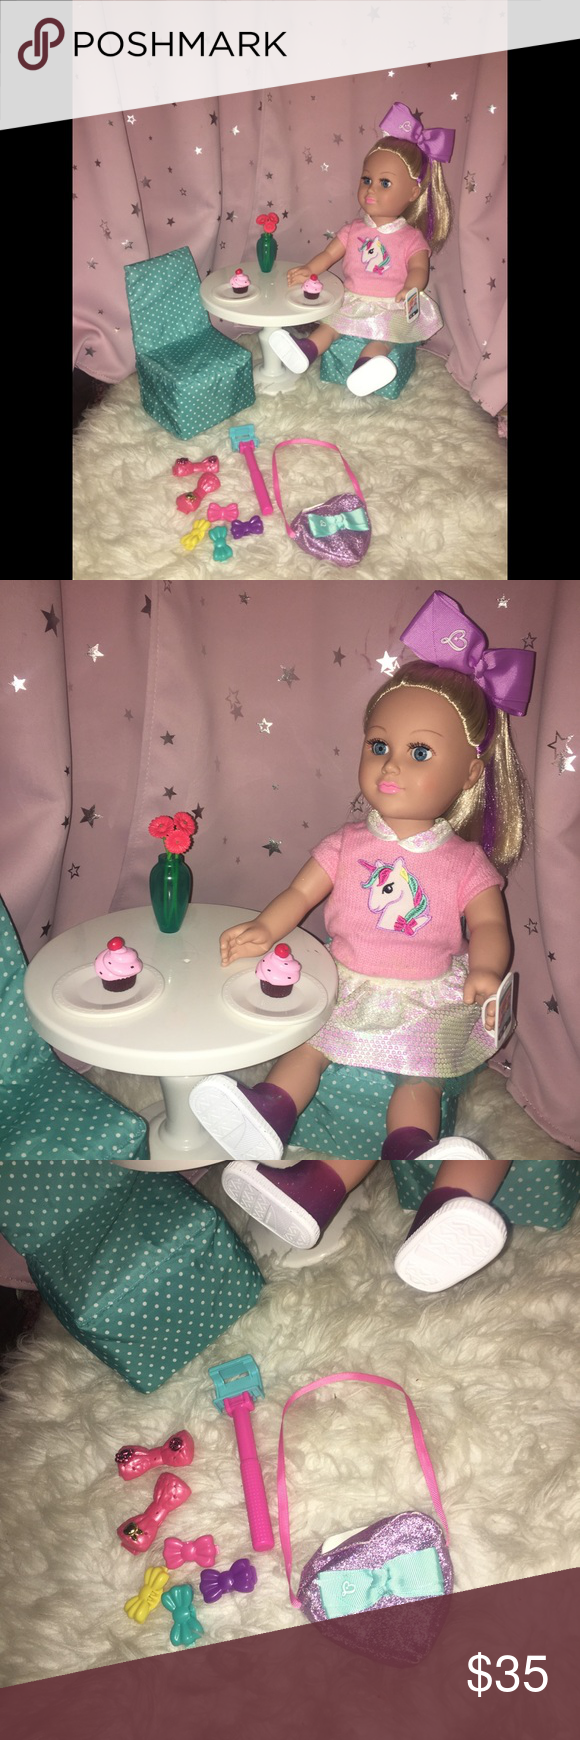 JoJo Siwa My Life Doll Jojo Siwa Doll & furniture with